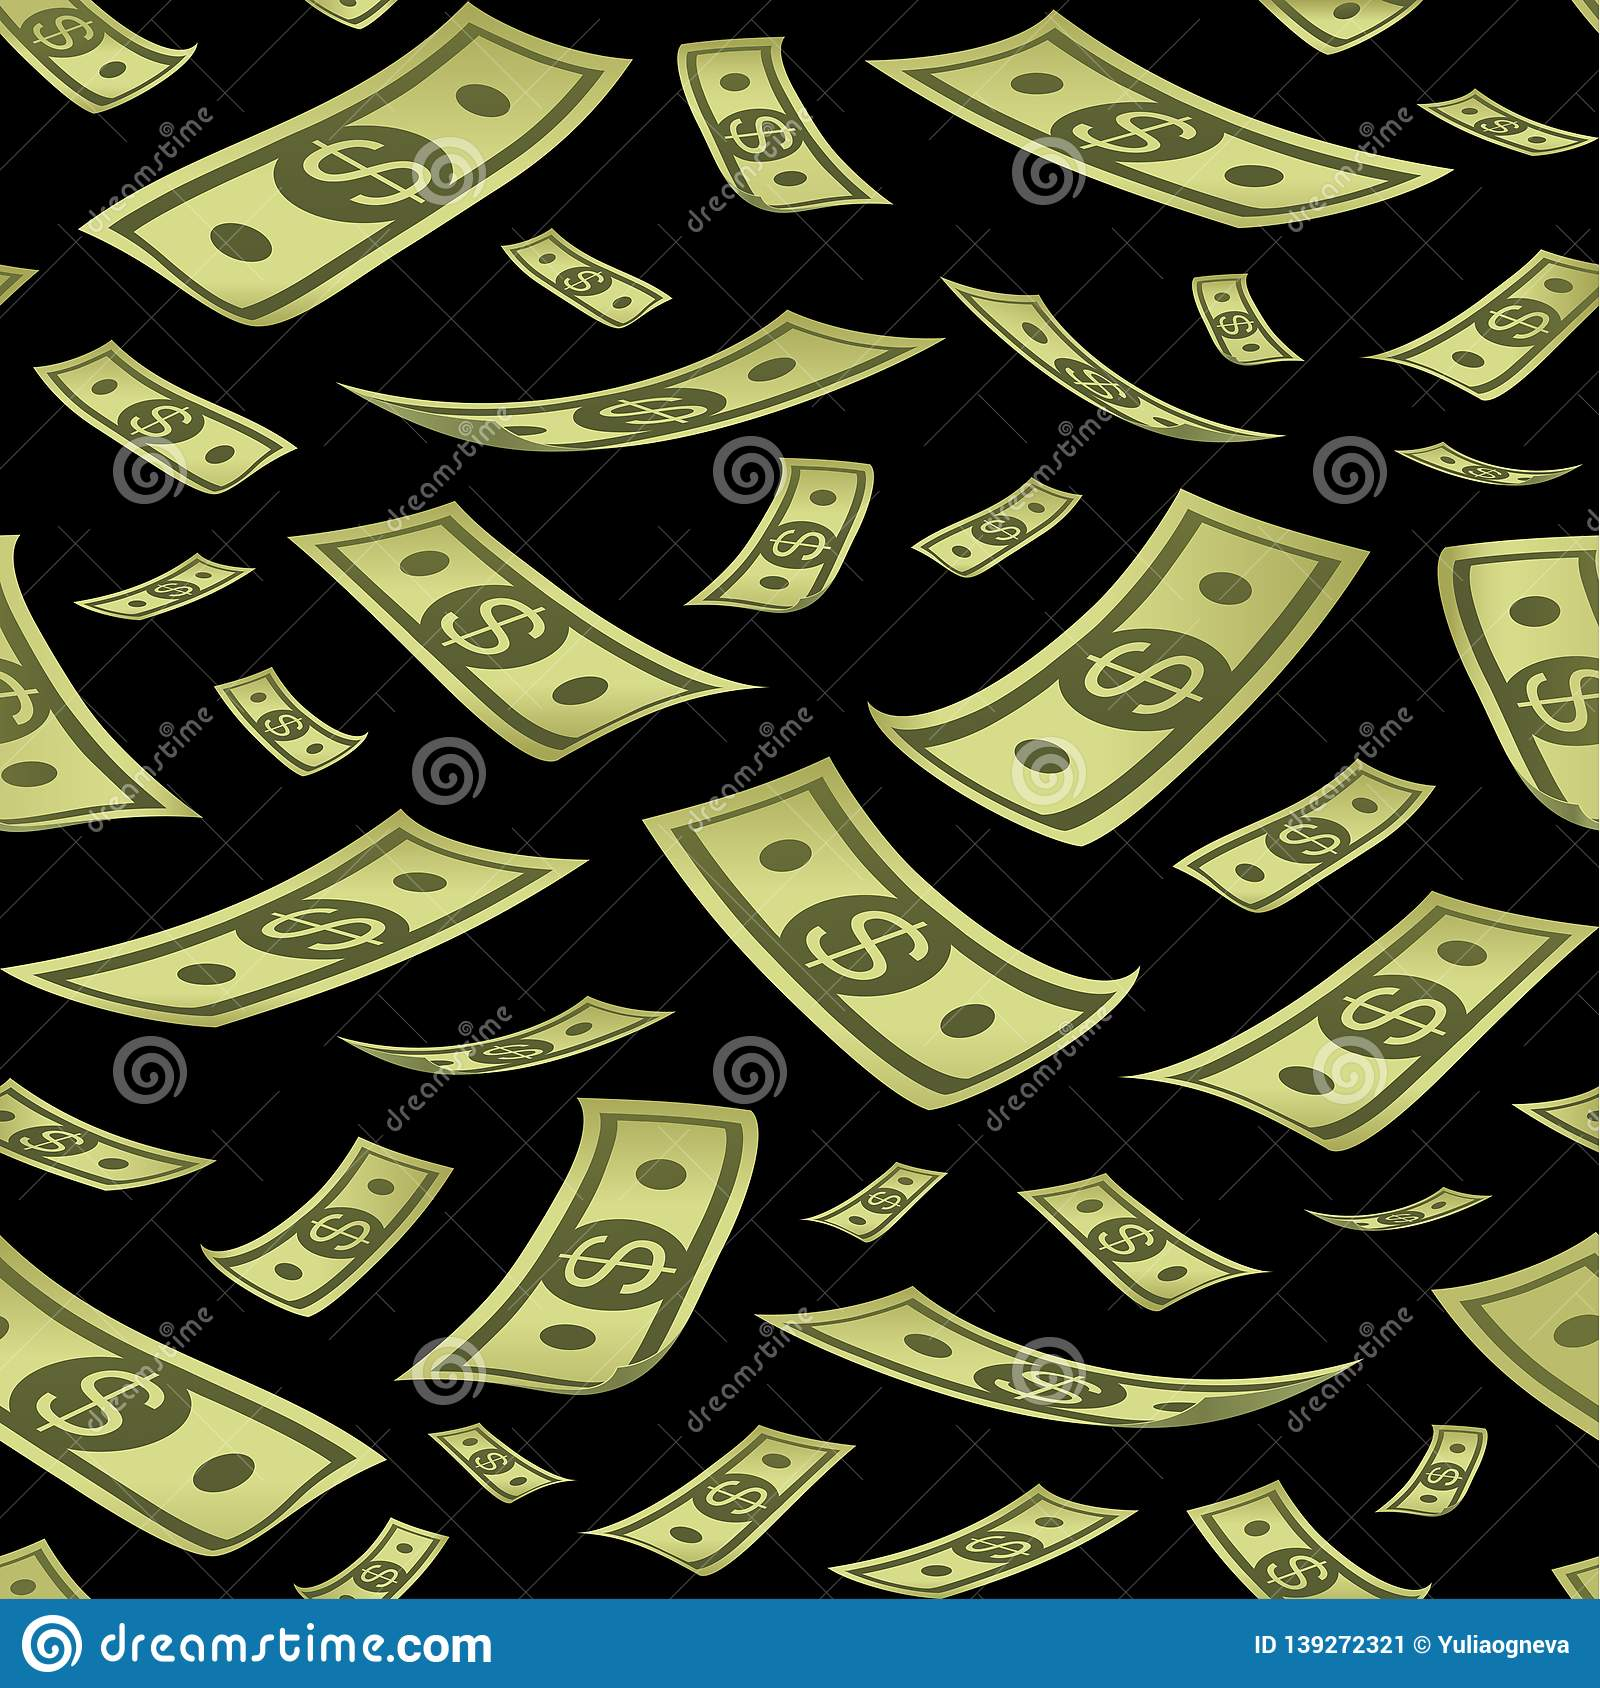 Seamless pattern with money. Rain of banknotes on black background.